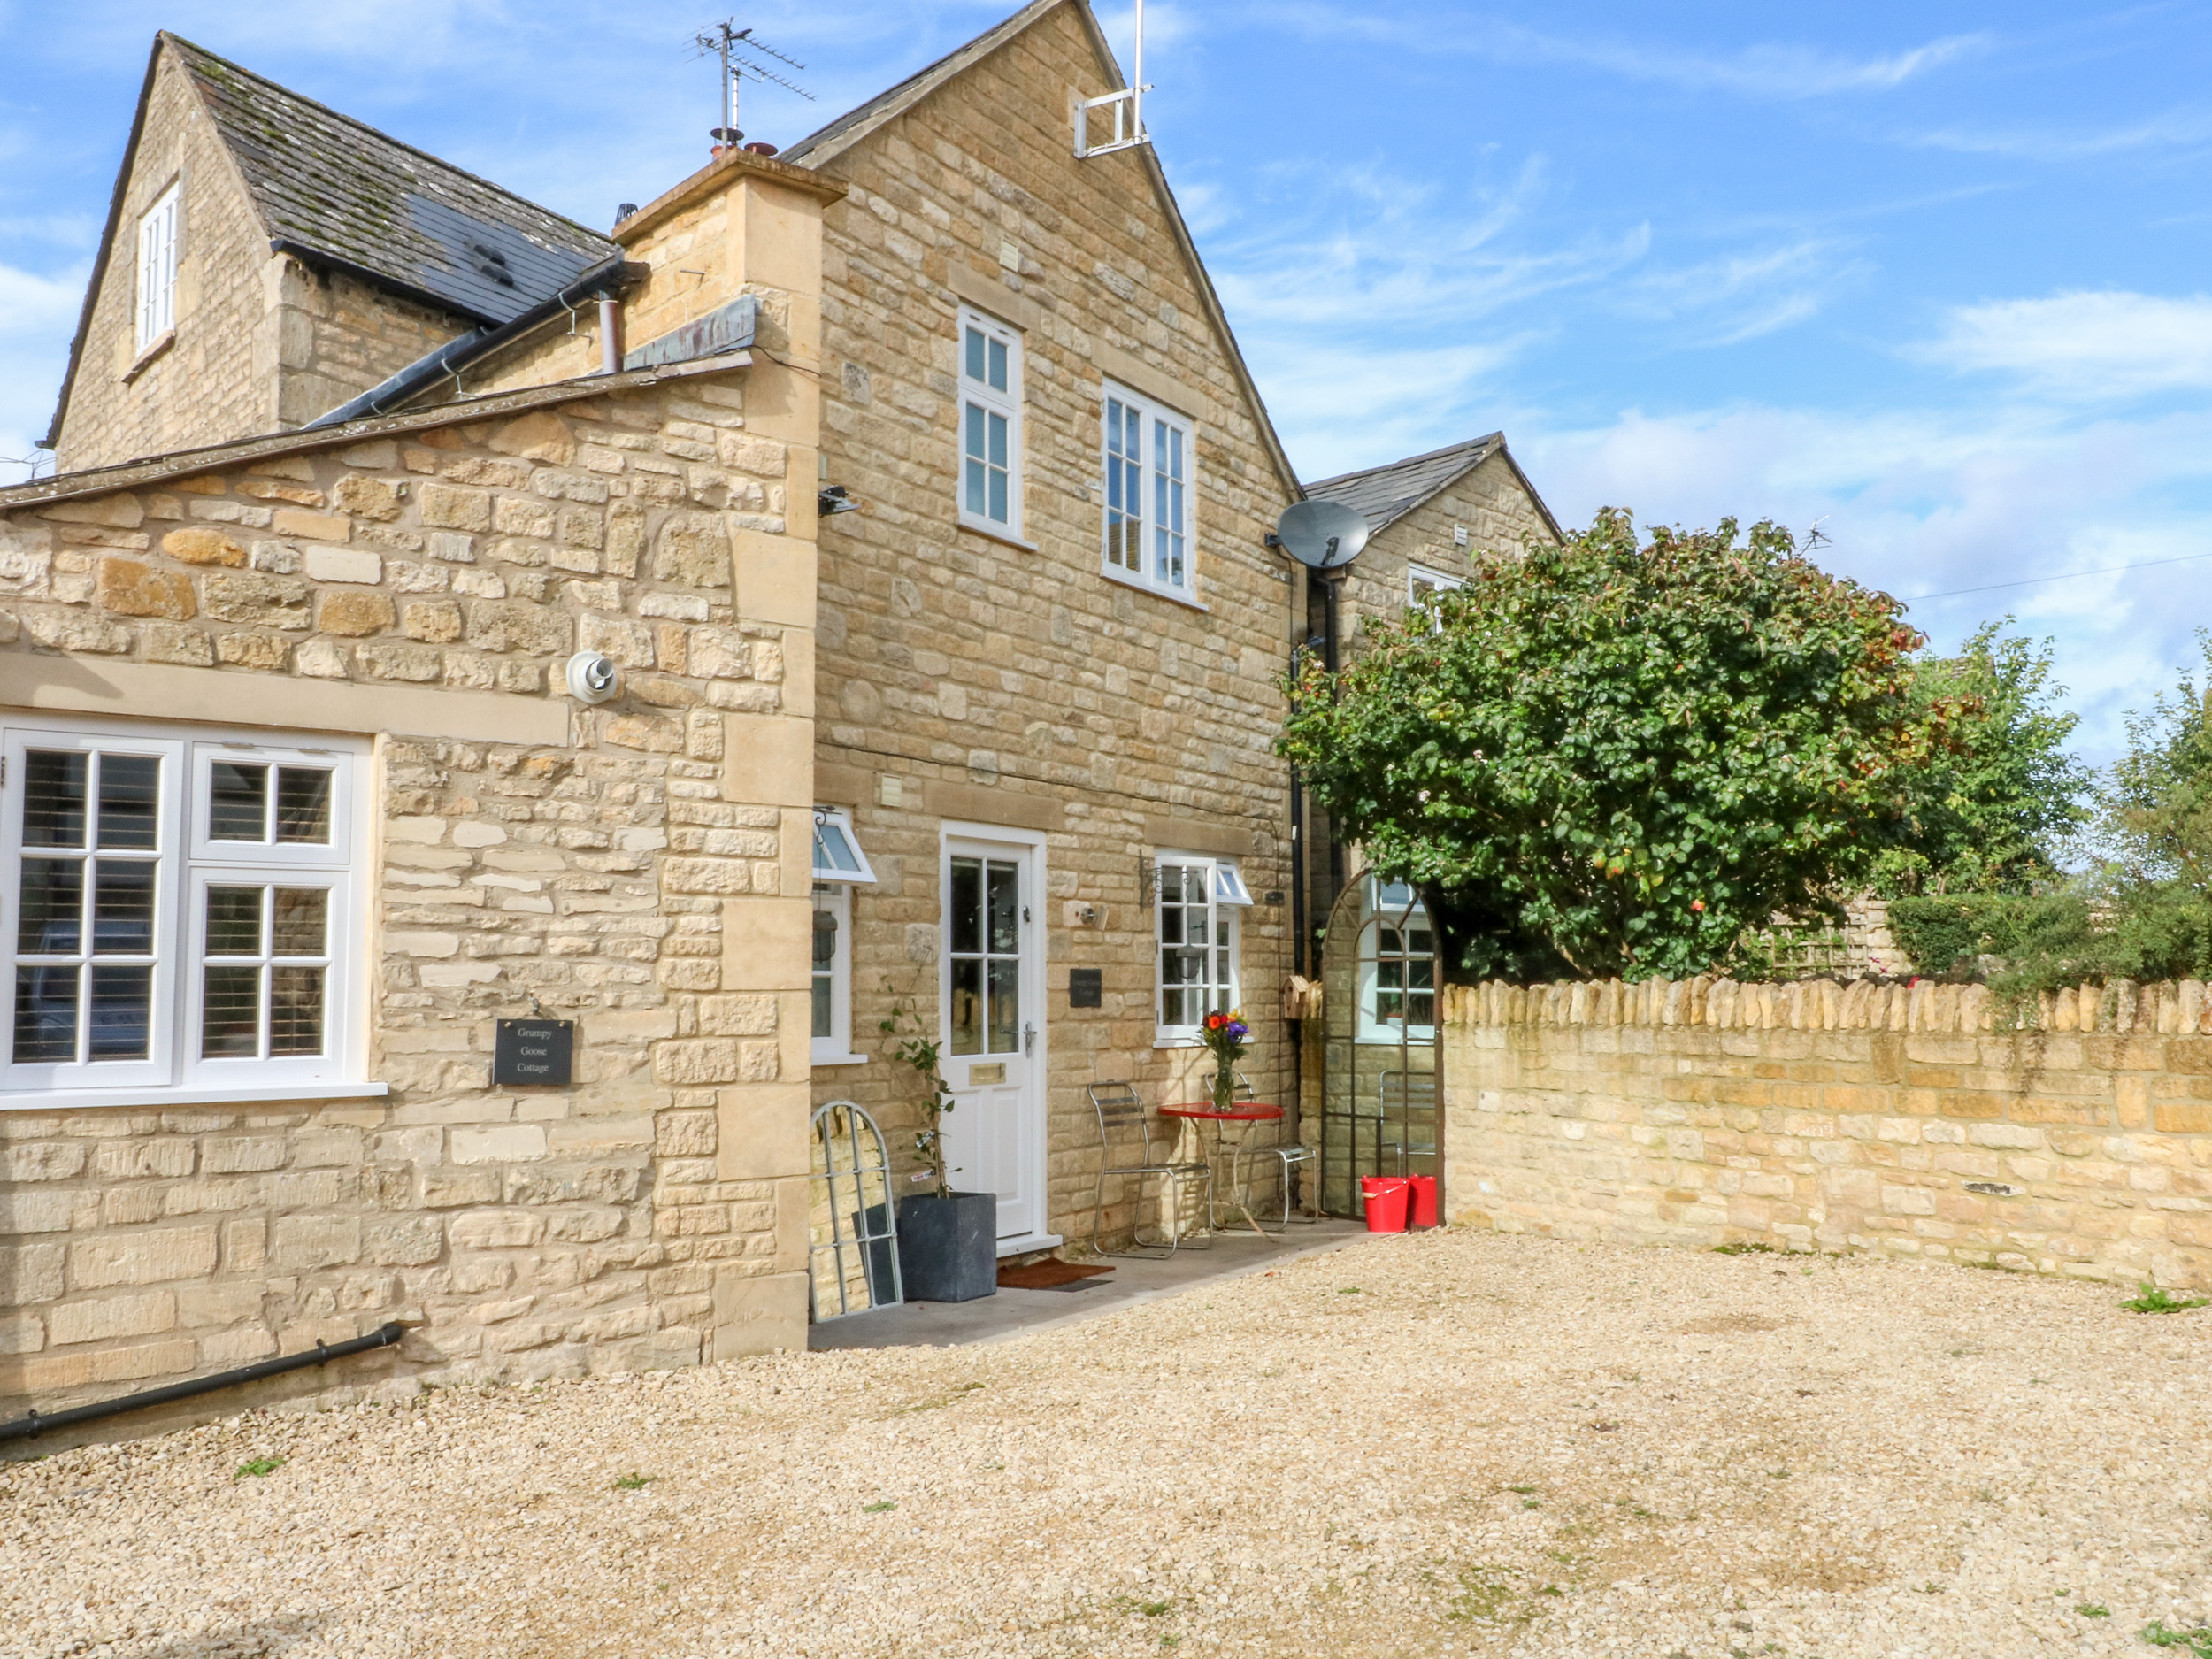 1 bedroom Cottage for rent in Winchcombe